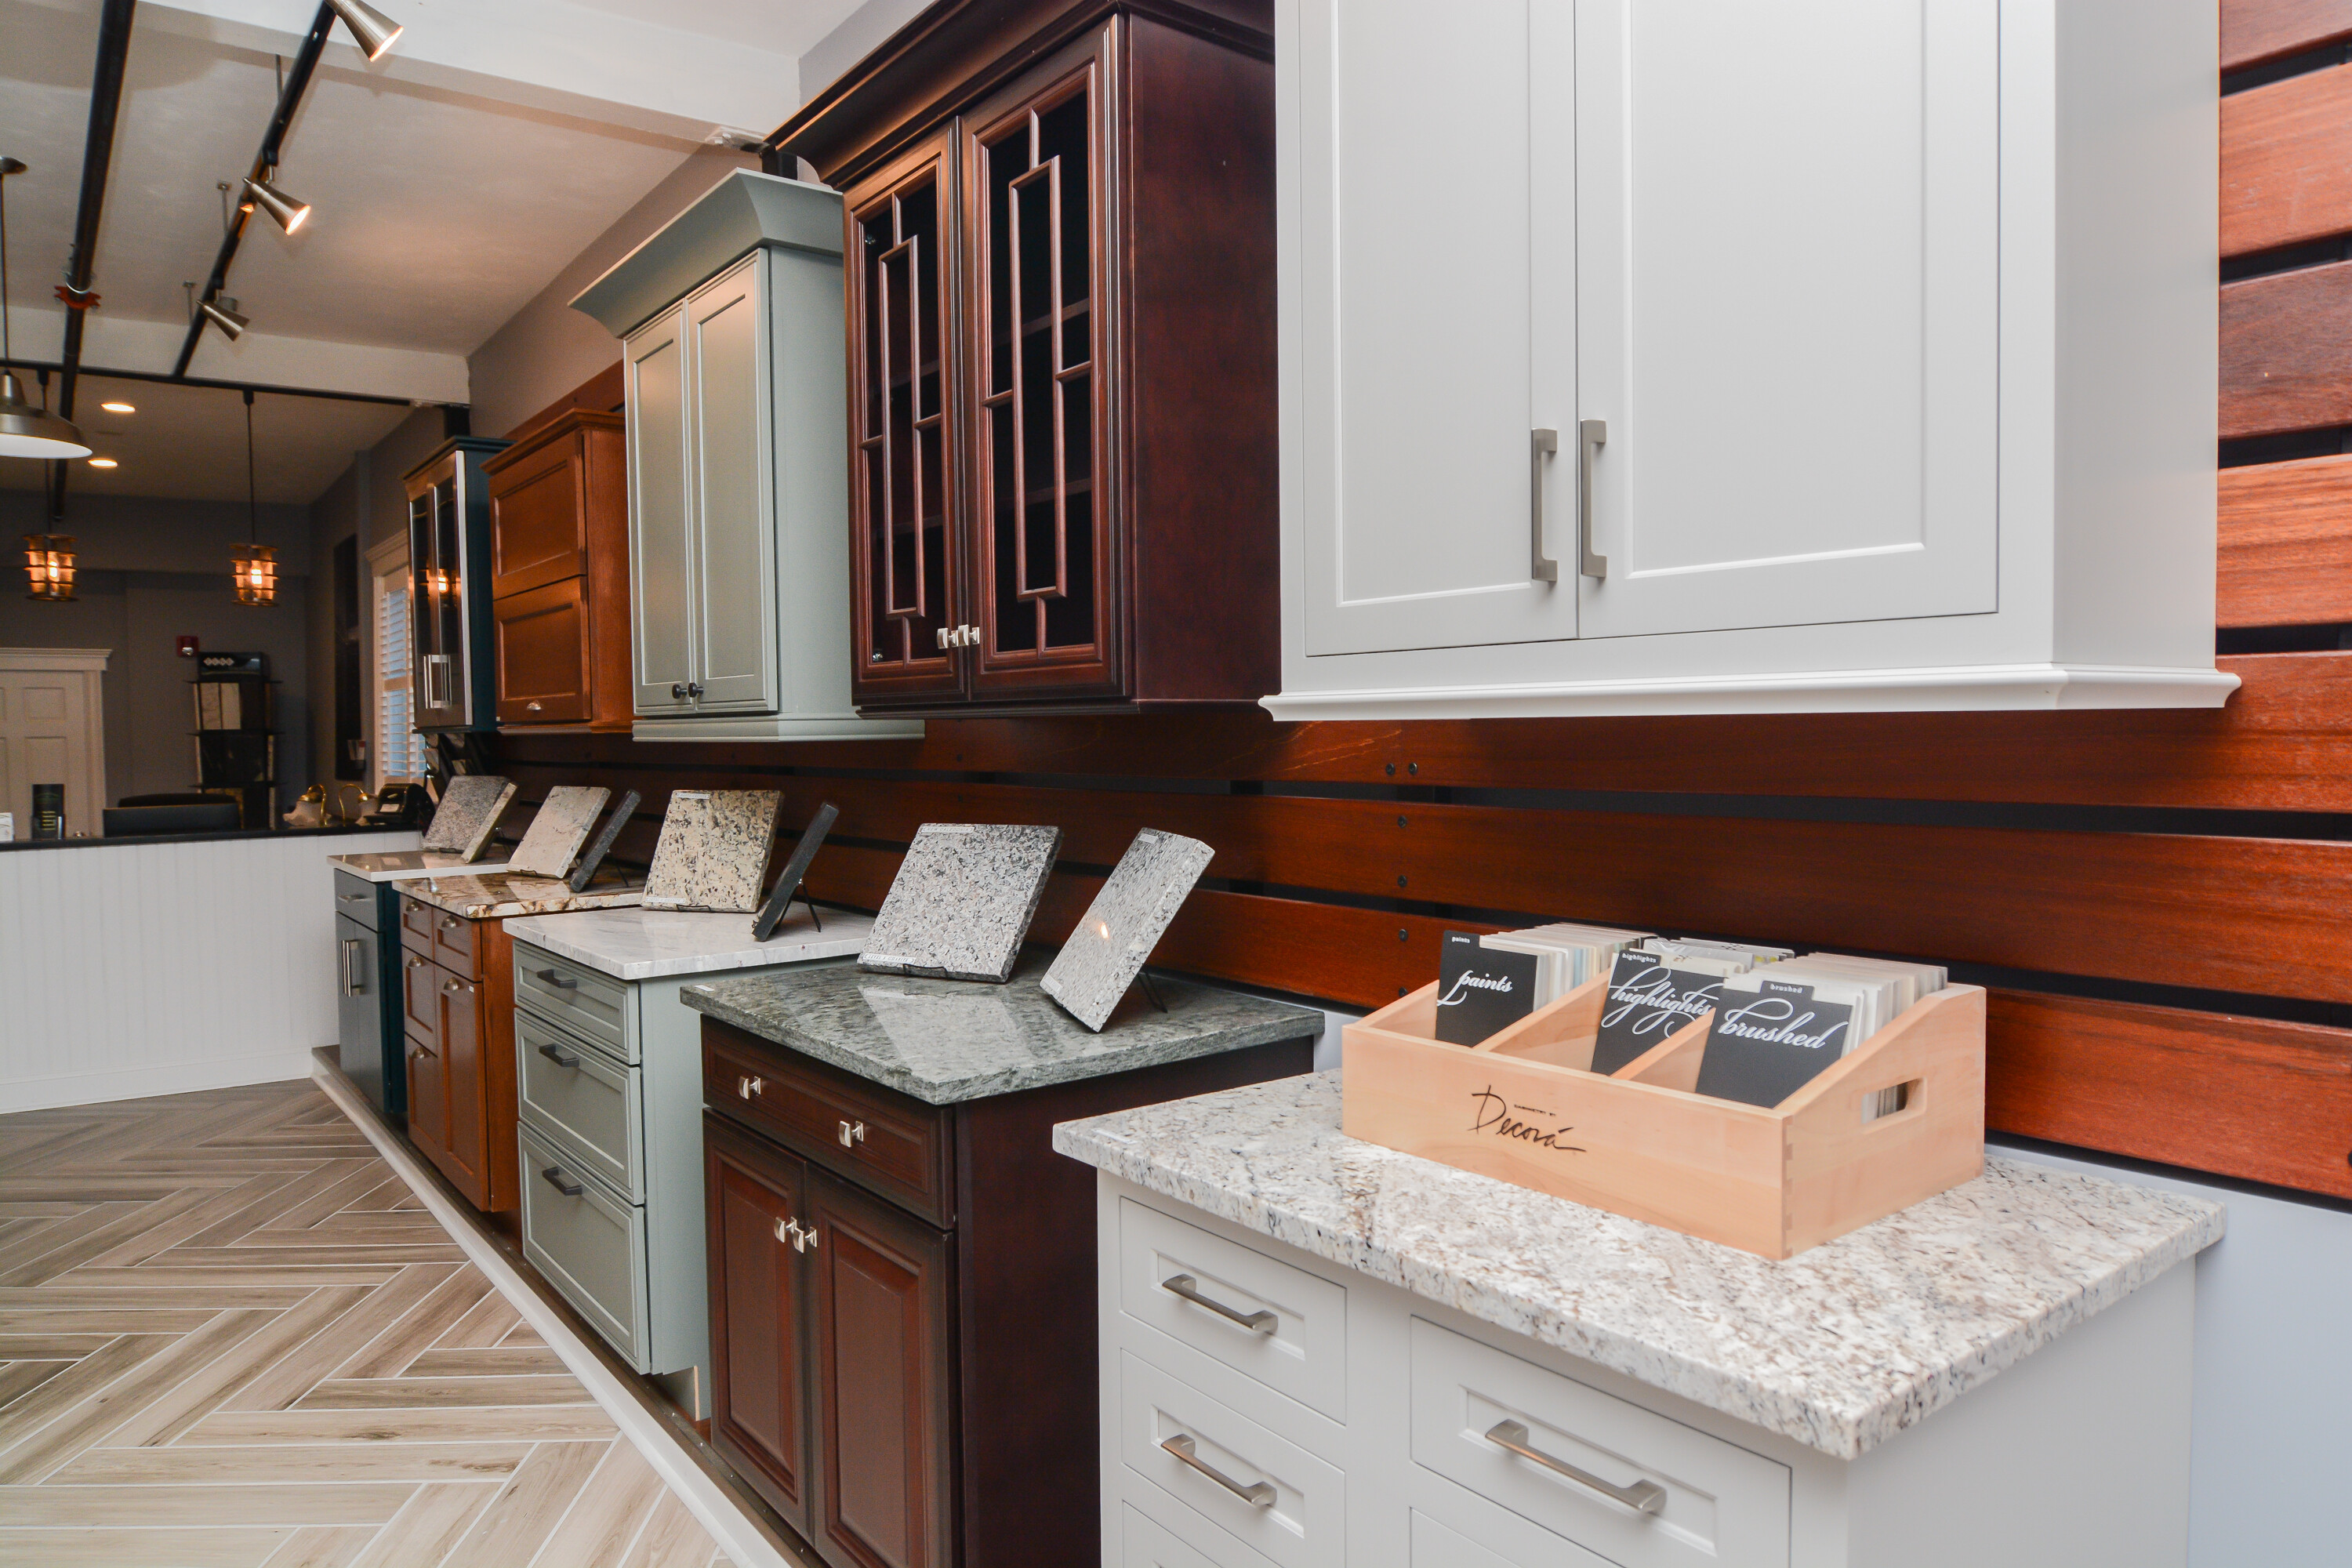 Canty Brothers Construction Kitchen Cabinet & Countertops Showroom Marlborough Massachusetts